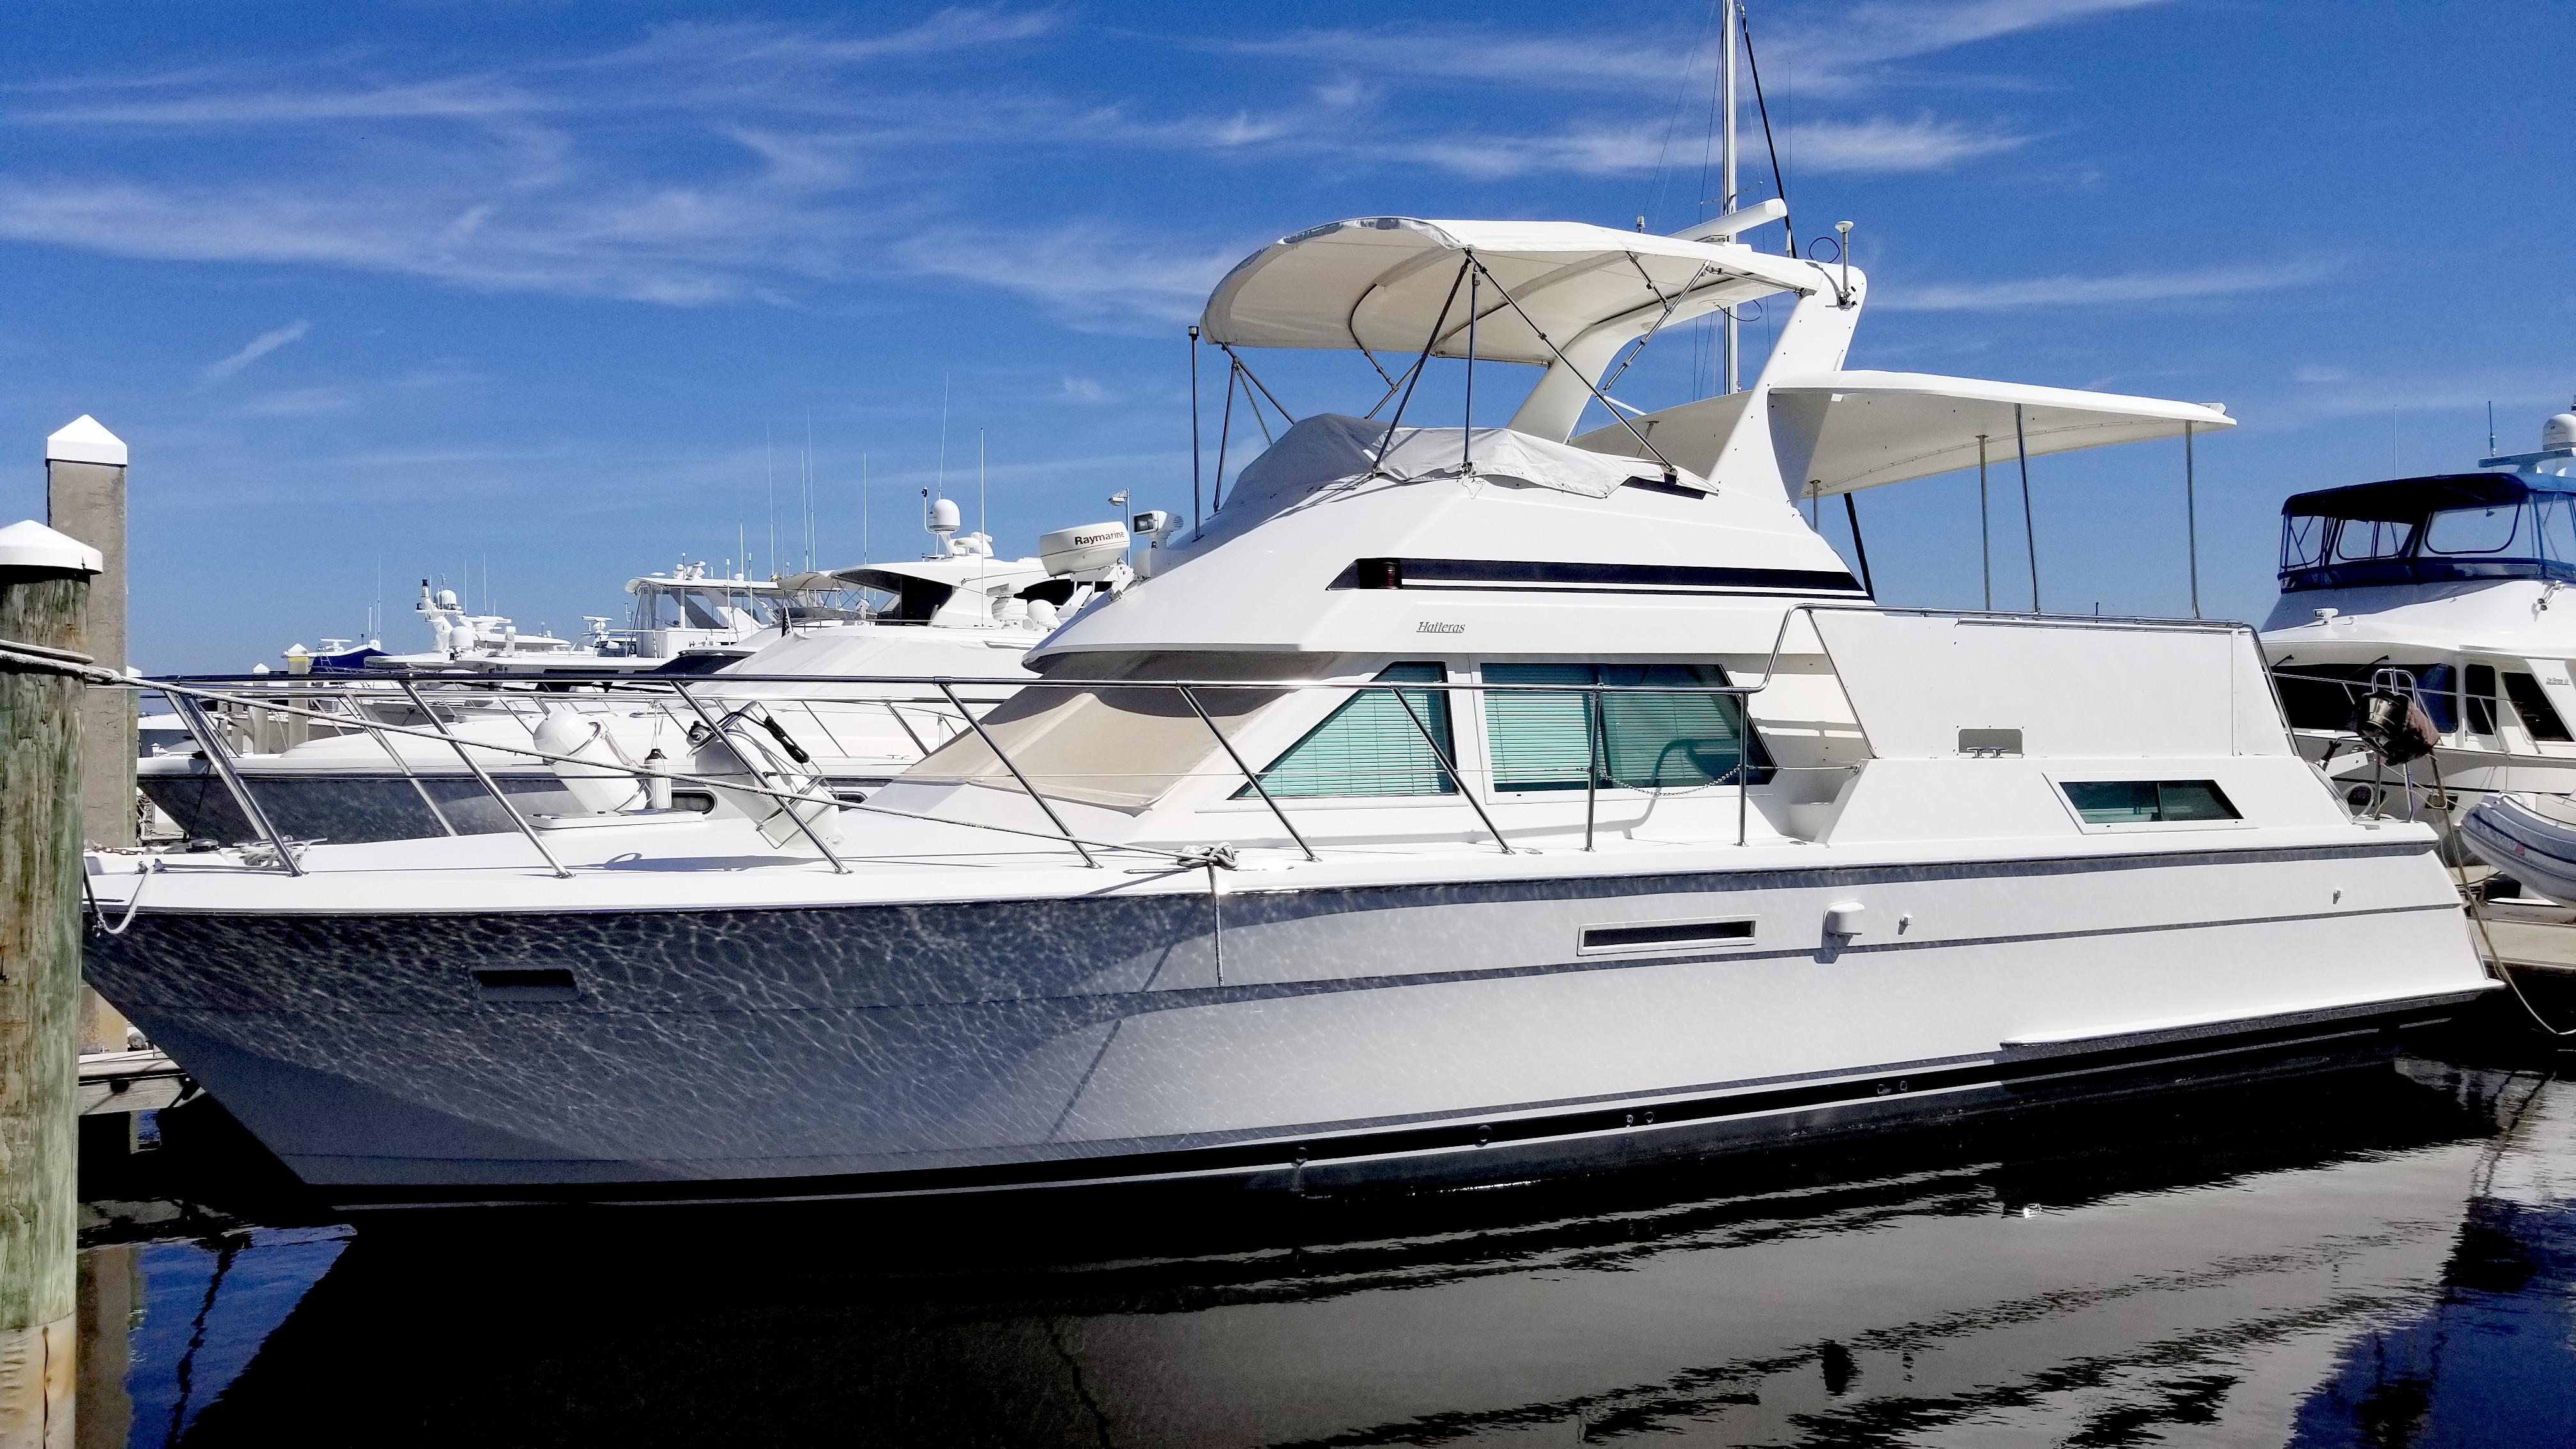 1995 Hatteras 42 Cockpit Motor Yacht Se Power New And Used